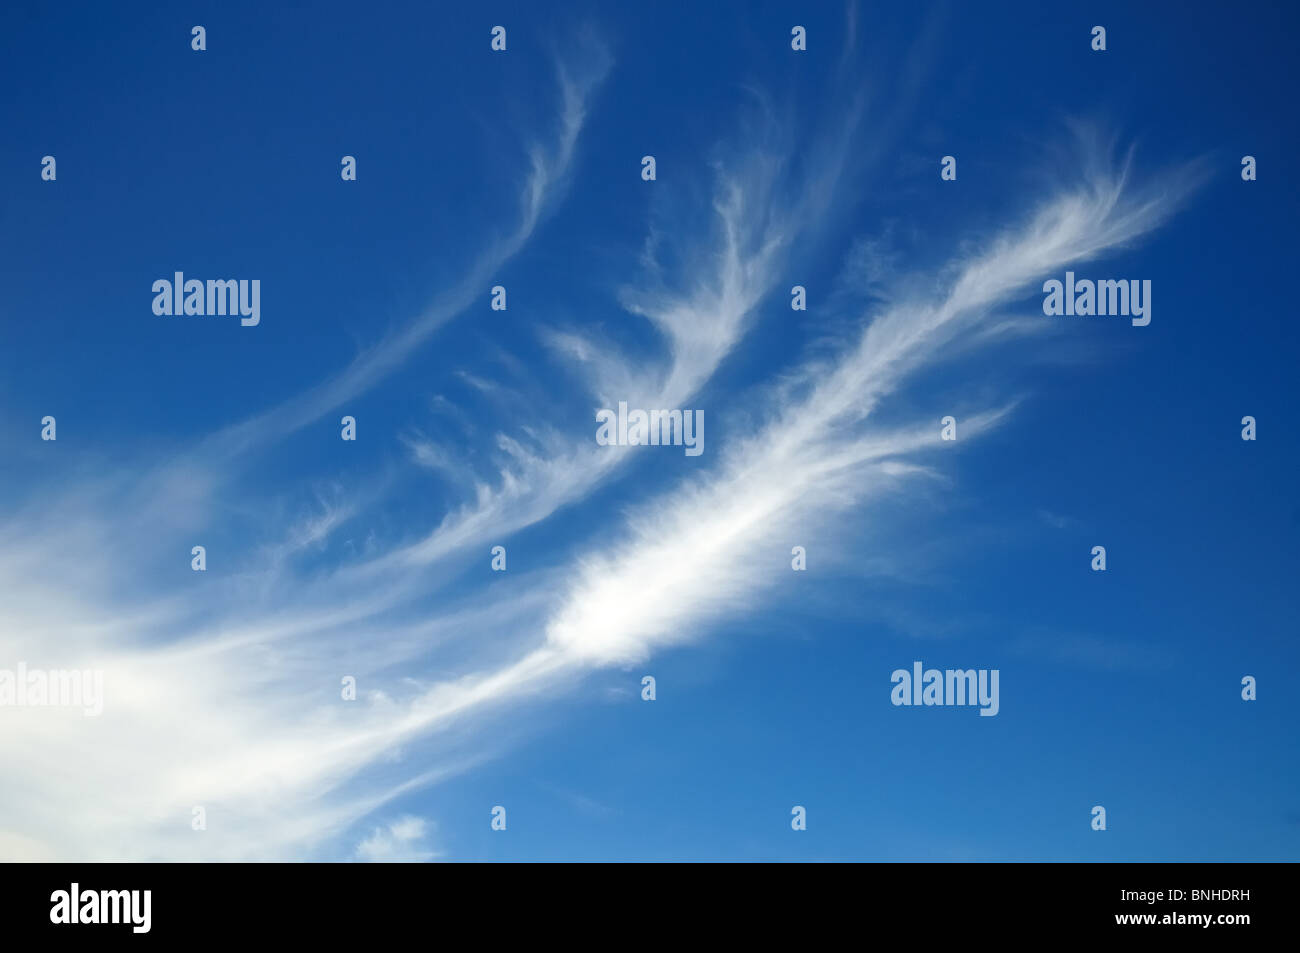 White cloud patterns against blue sky - Stock Image